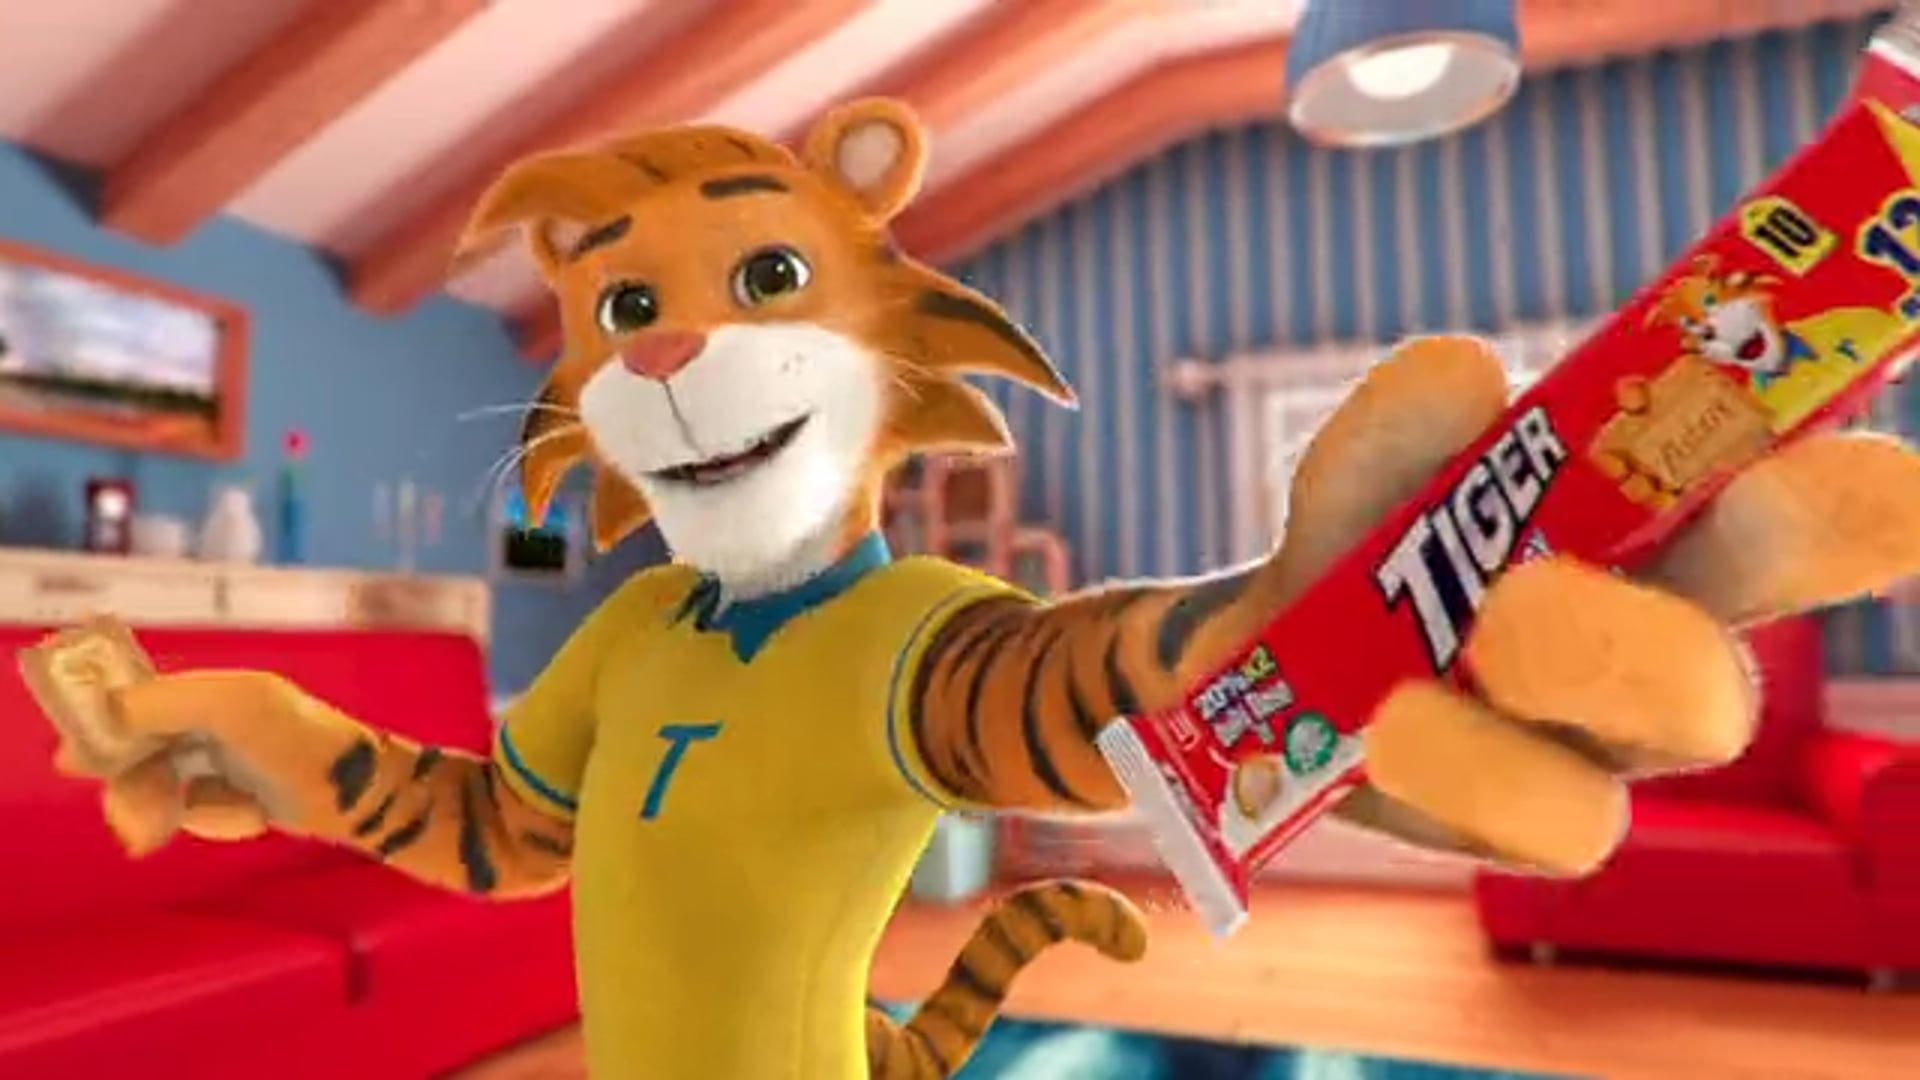 Tiger Energy Biscuits | Energy Bhari Snacking - Sharp Image